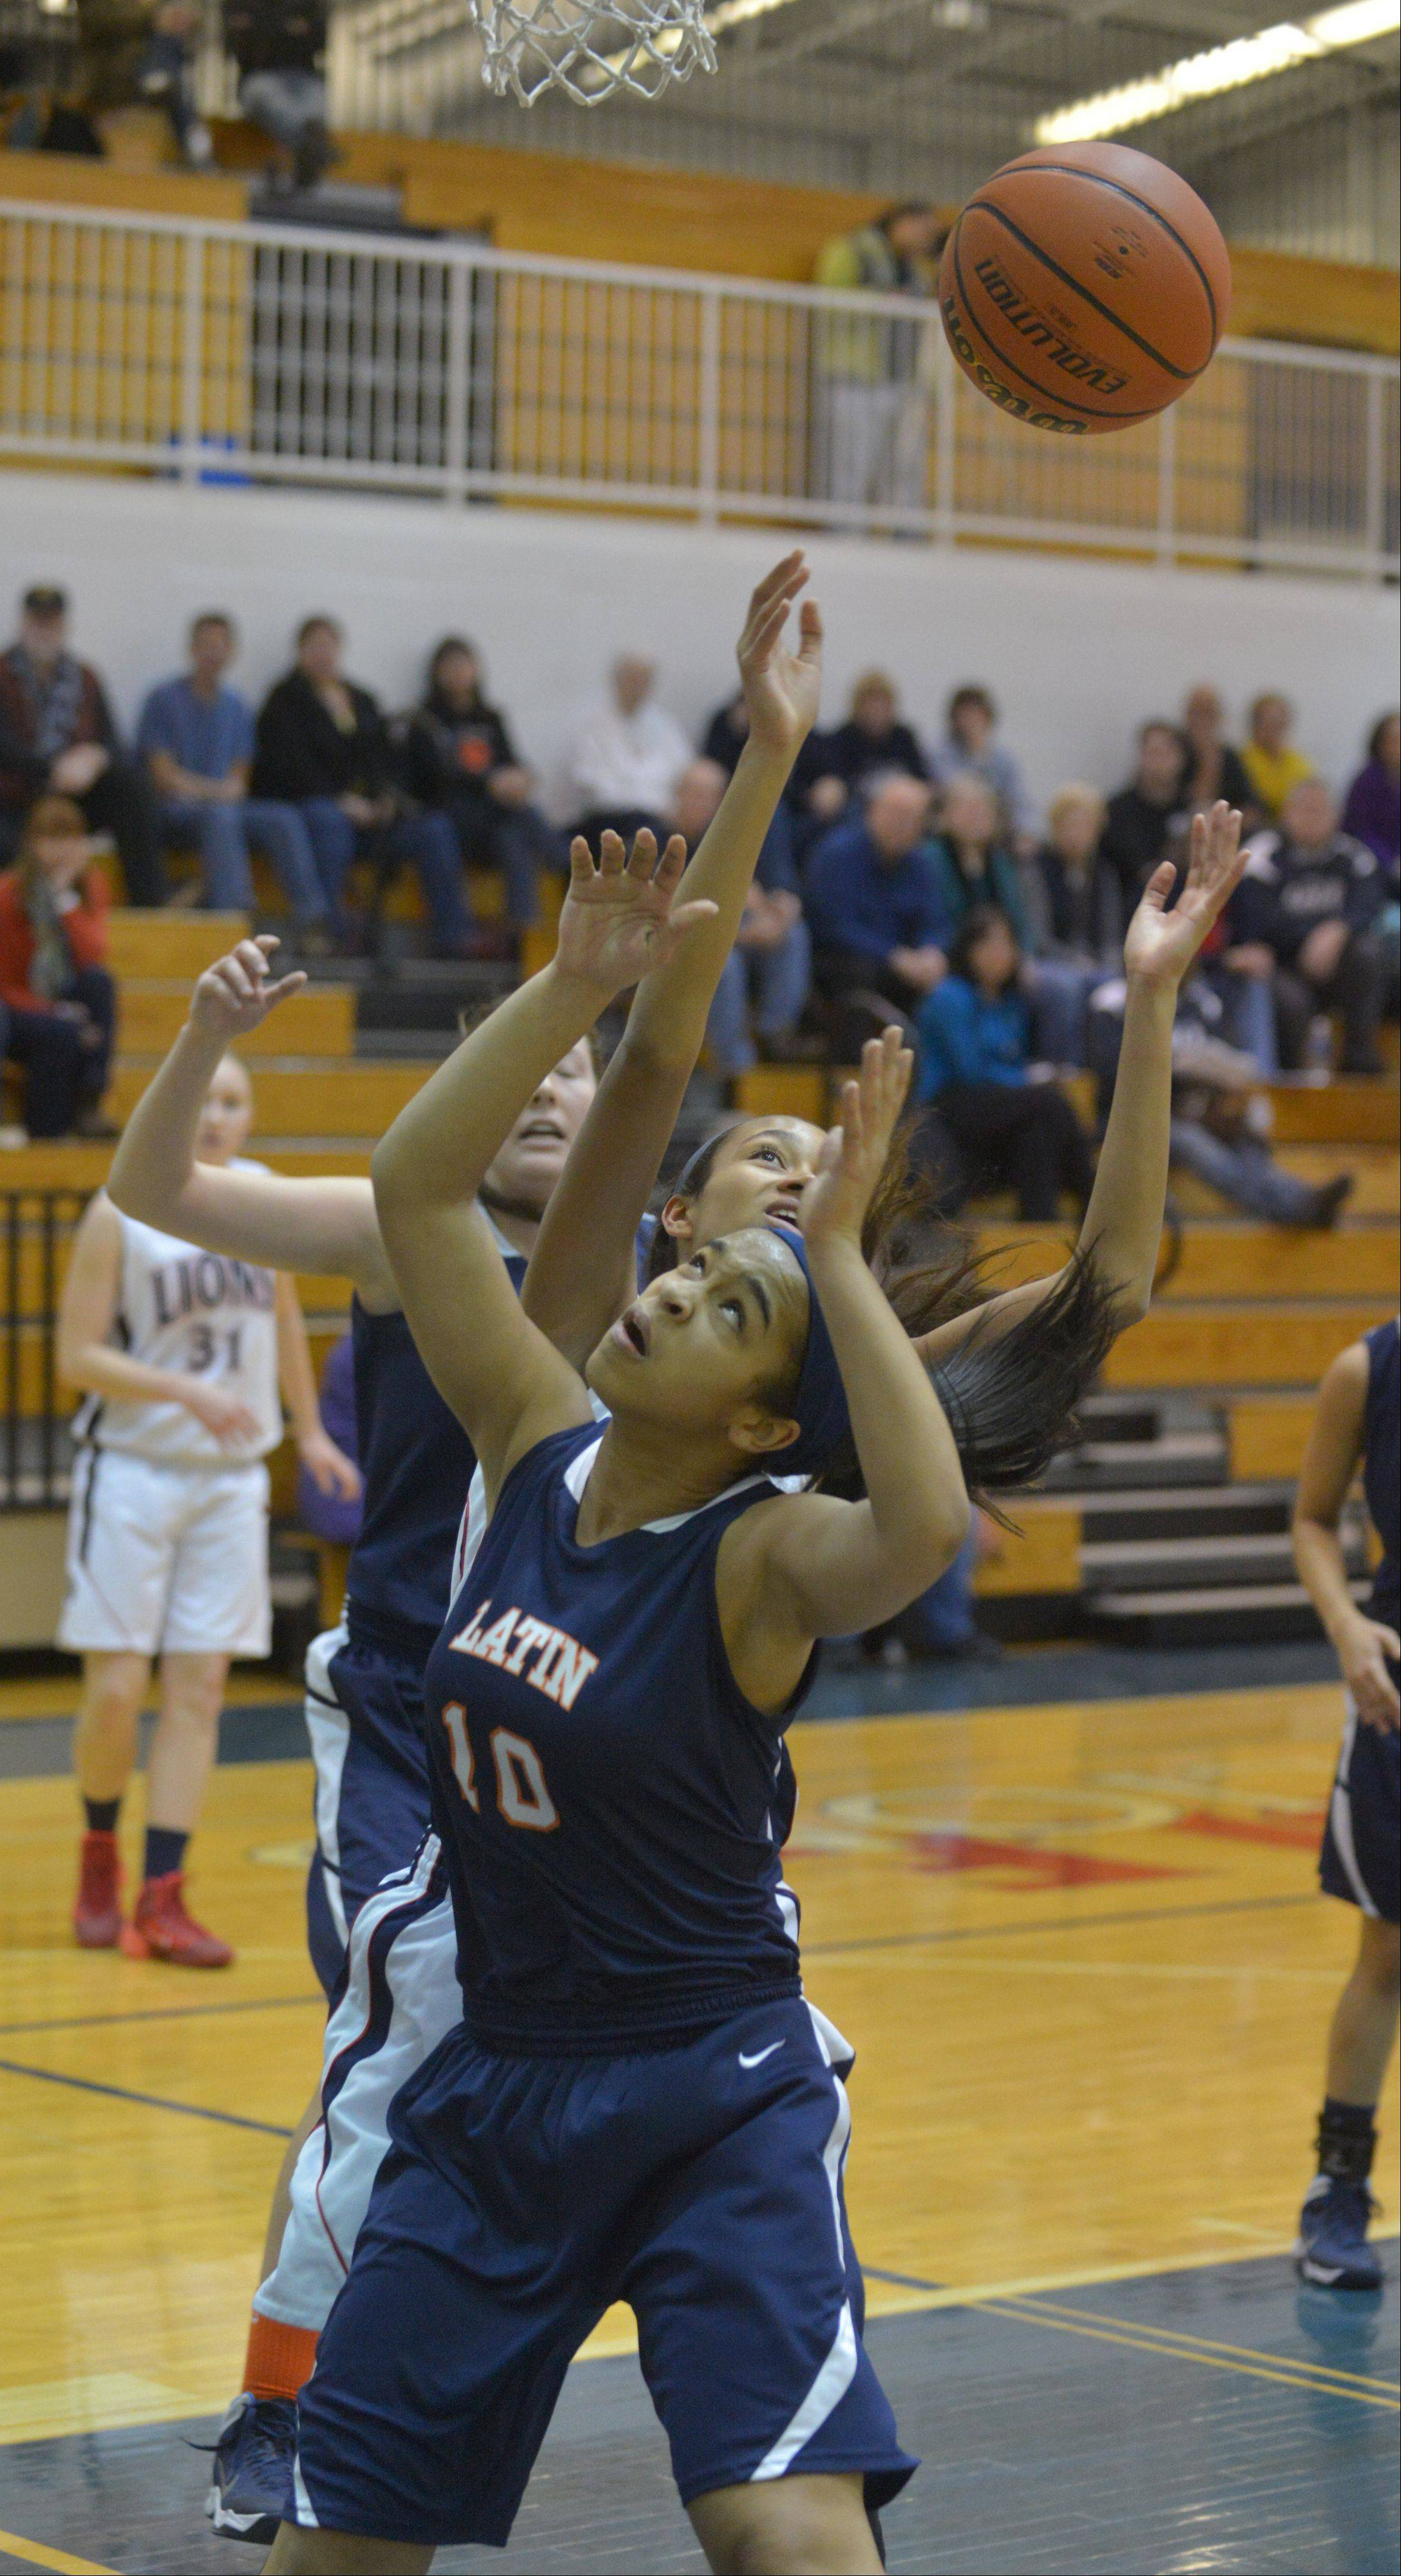 Images from the Lisle vs. Latin School girls basketball game on Thursday, Dec. 26, 2013.